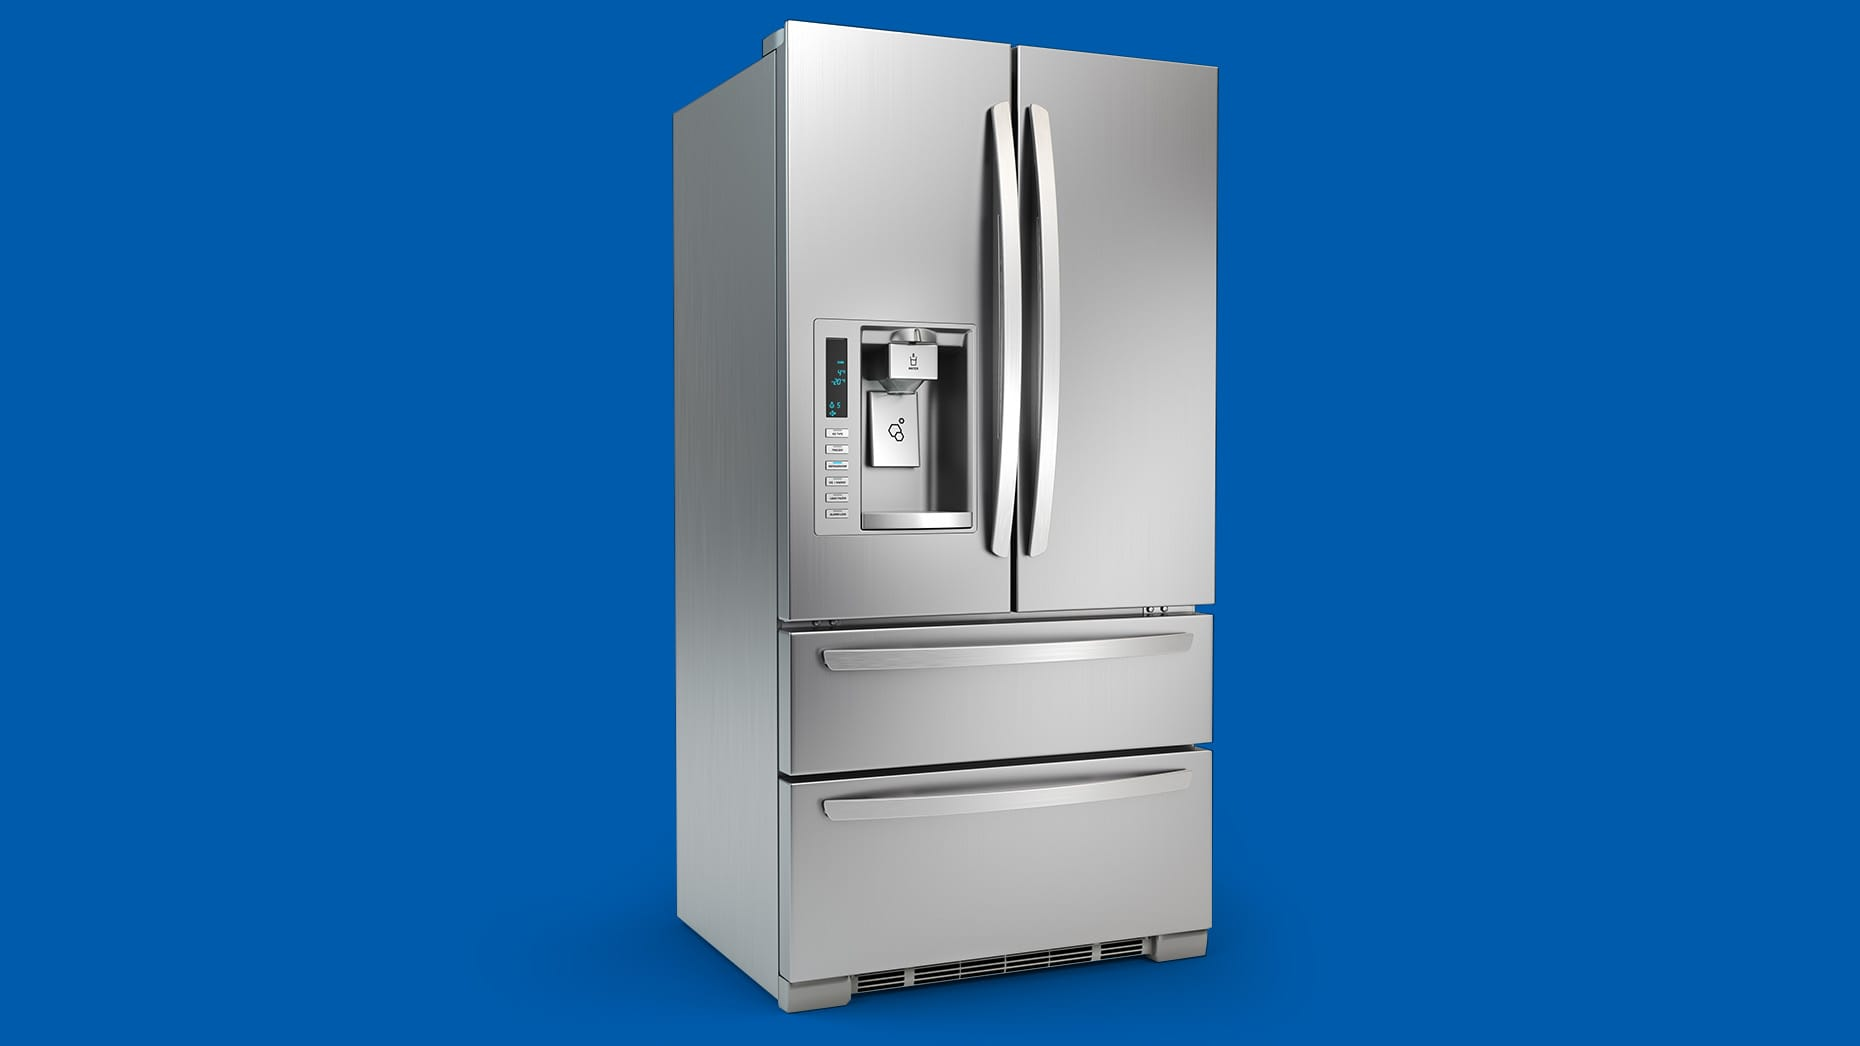 Memberservices homeservices productsandservices surgeprotection formajorappliances 1860x1046